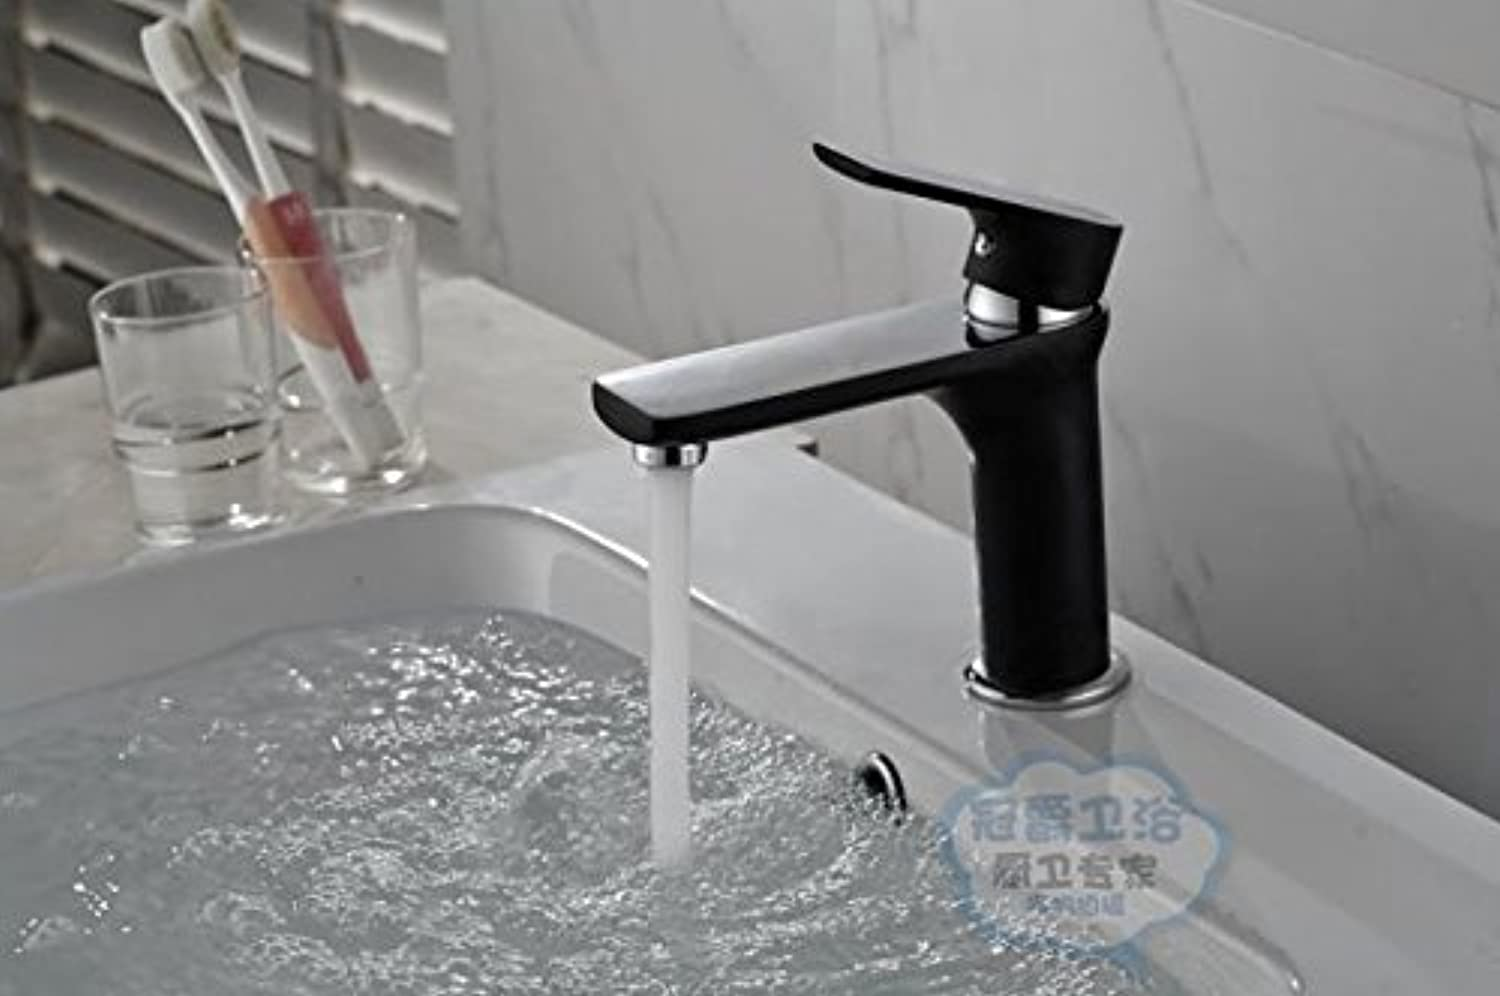 SADASD Contemporary Bathroom Full Copper Basin Faucet Half-Black Paint Bright Chrome color Basin Sink Mixer Tap Ceramic Valve Single Hole Single Handle Cold Water With G1 2 Hose